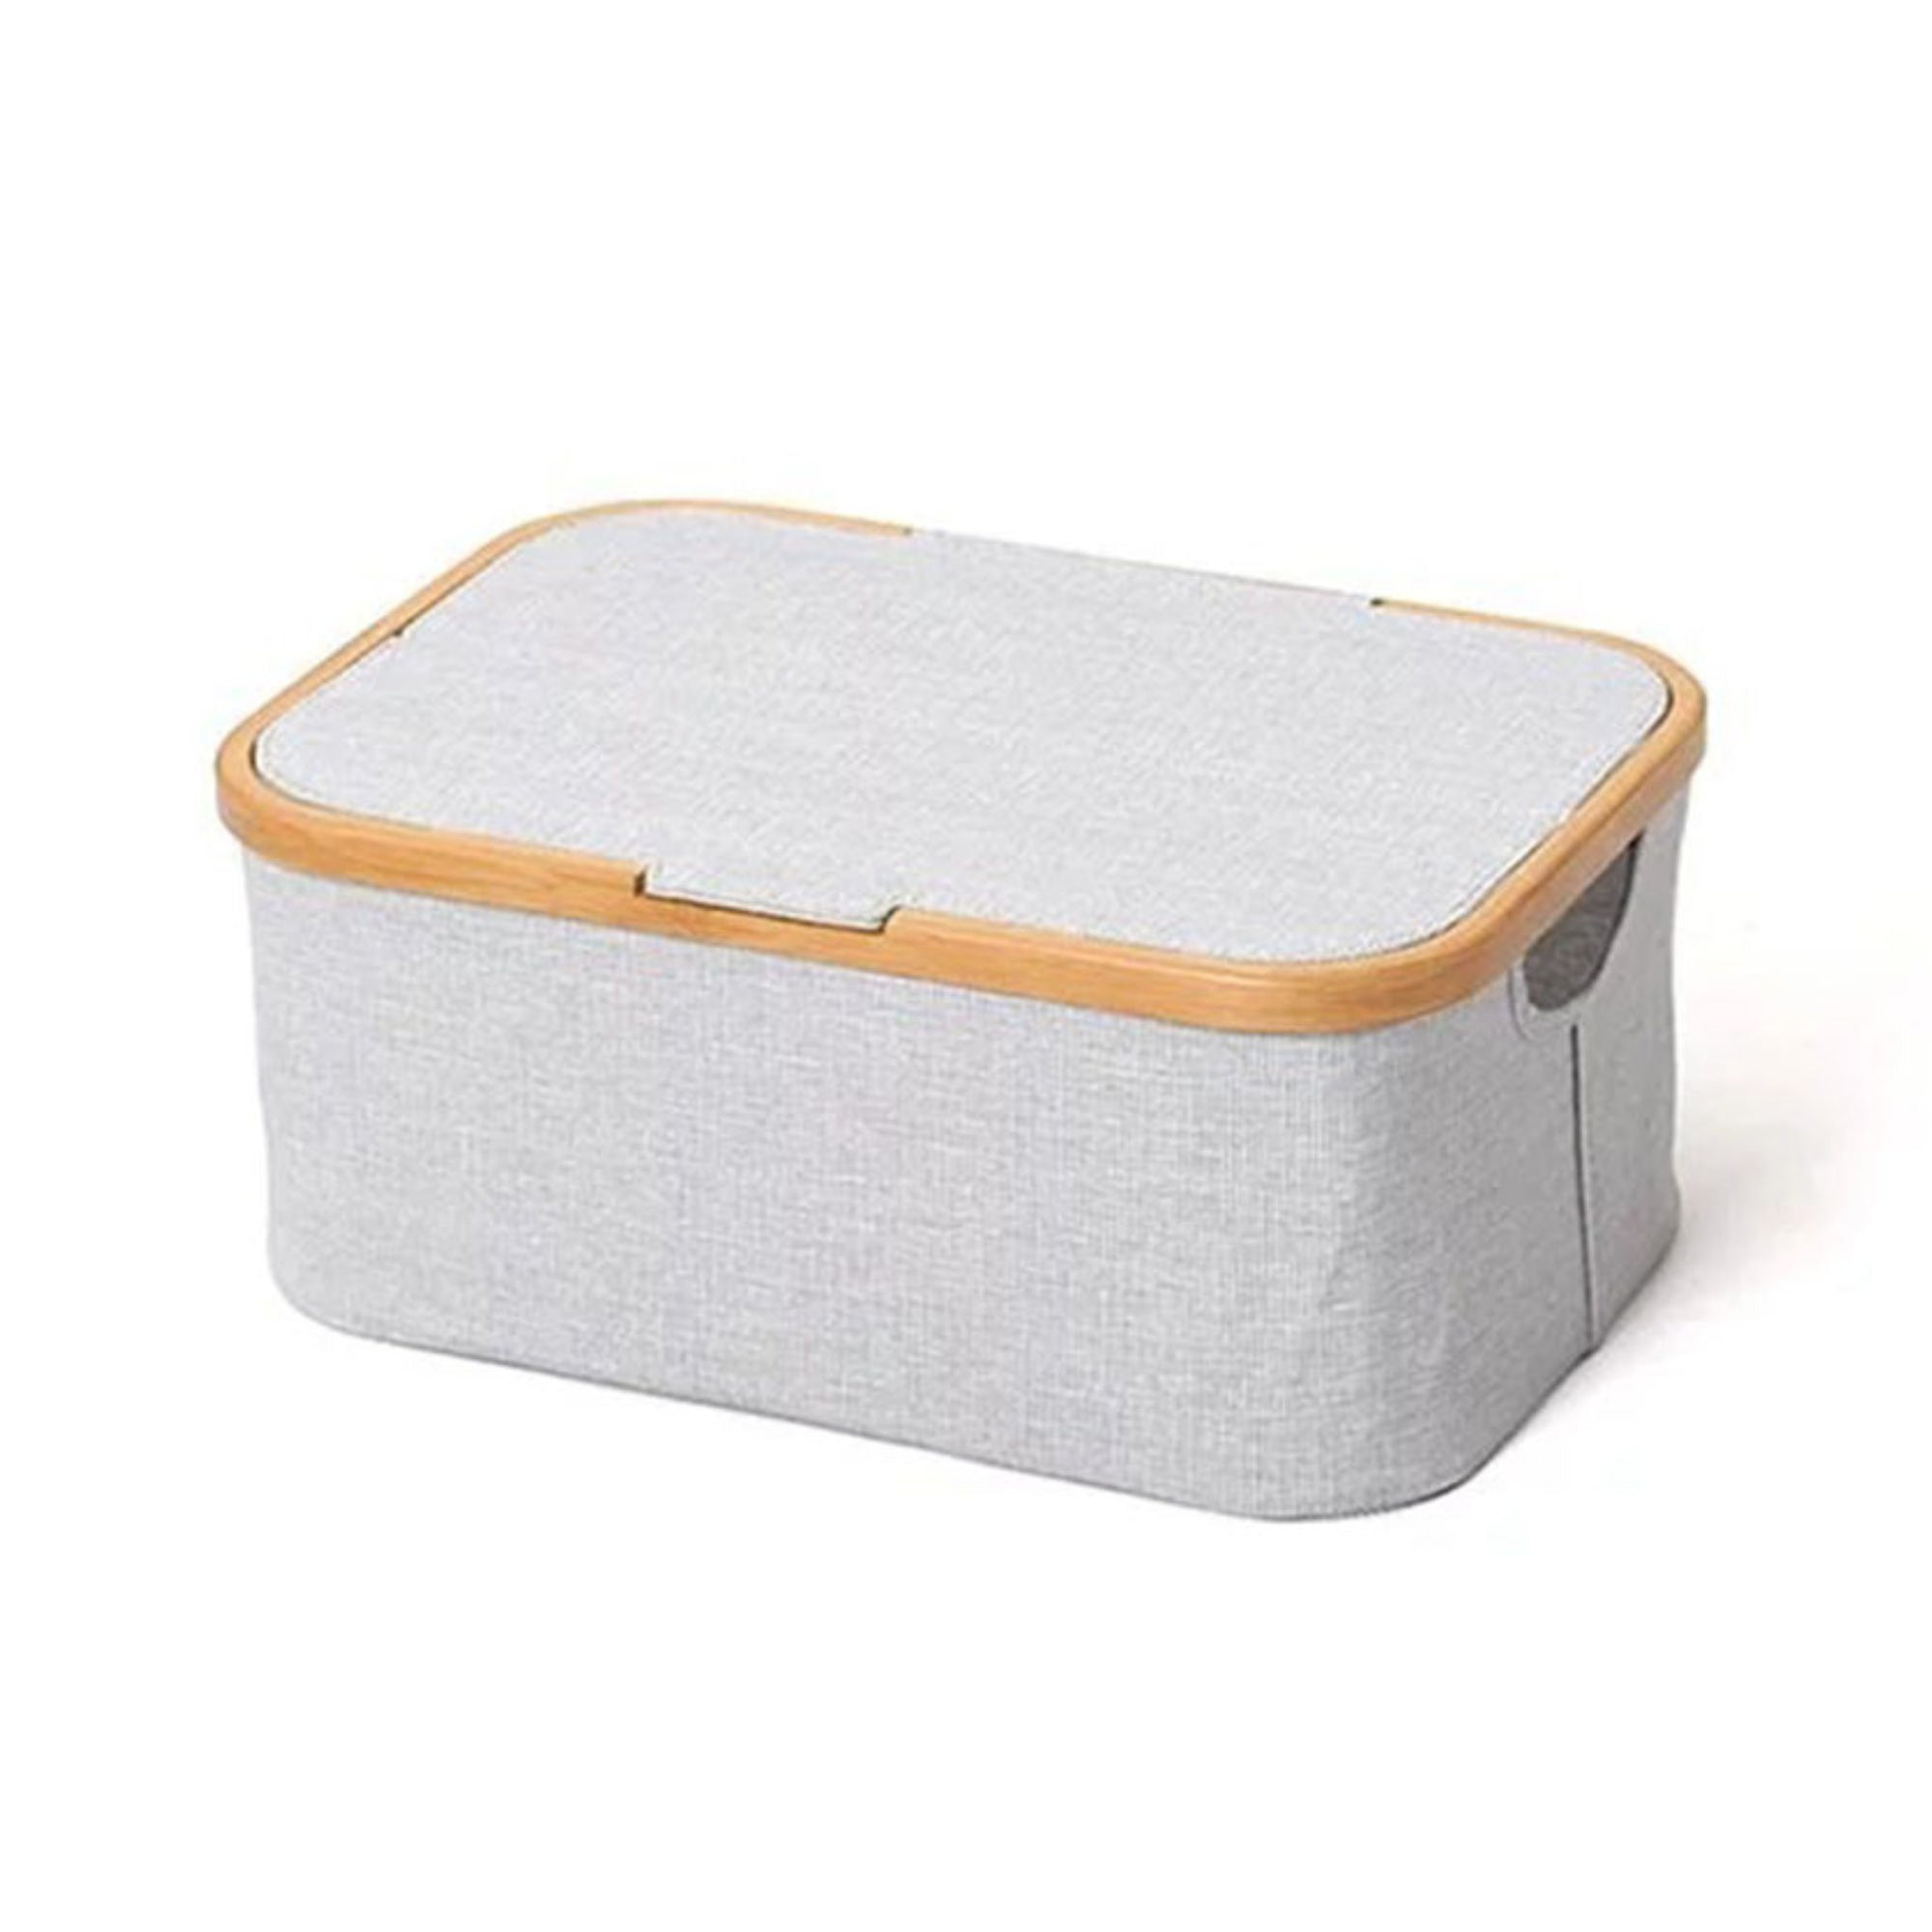 Gudee Akore storage box with lid, retangular